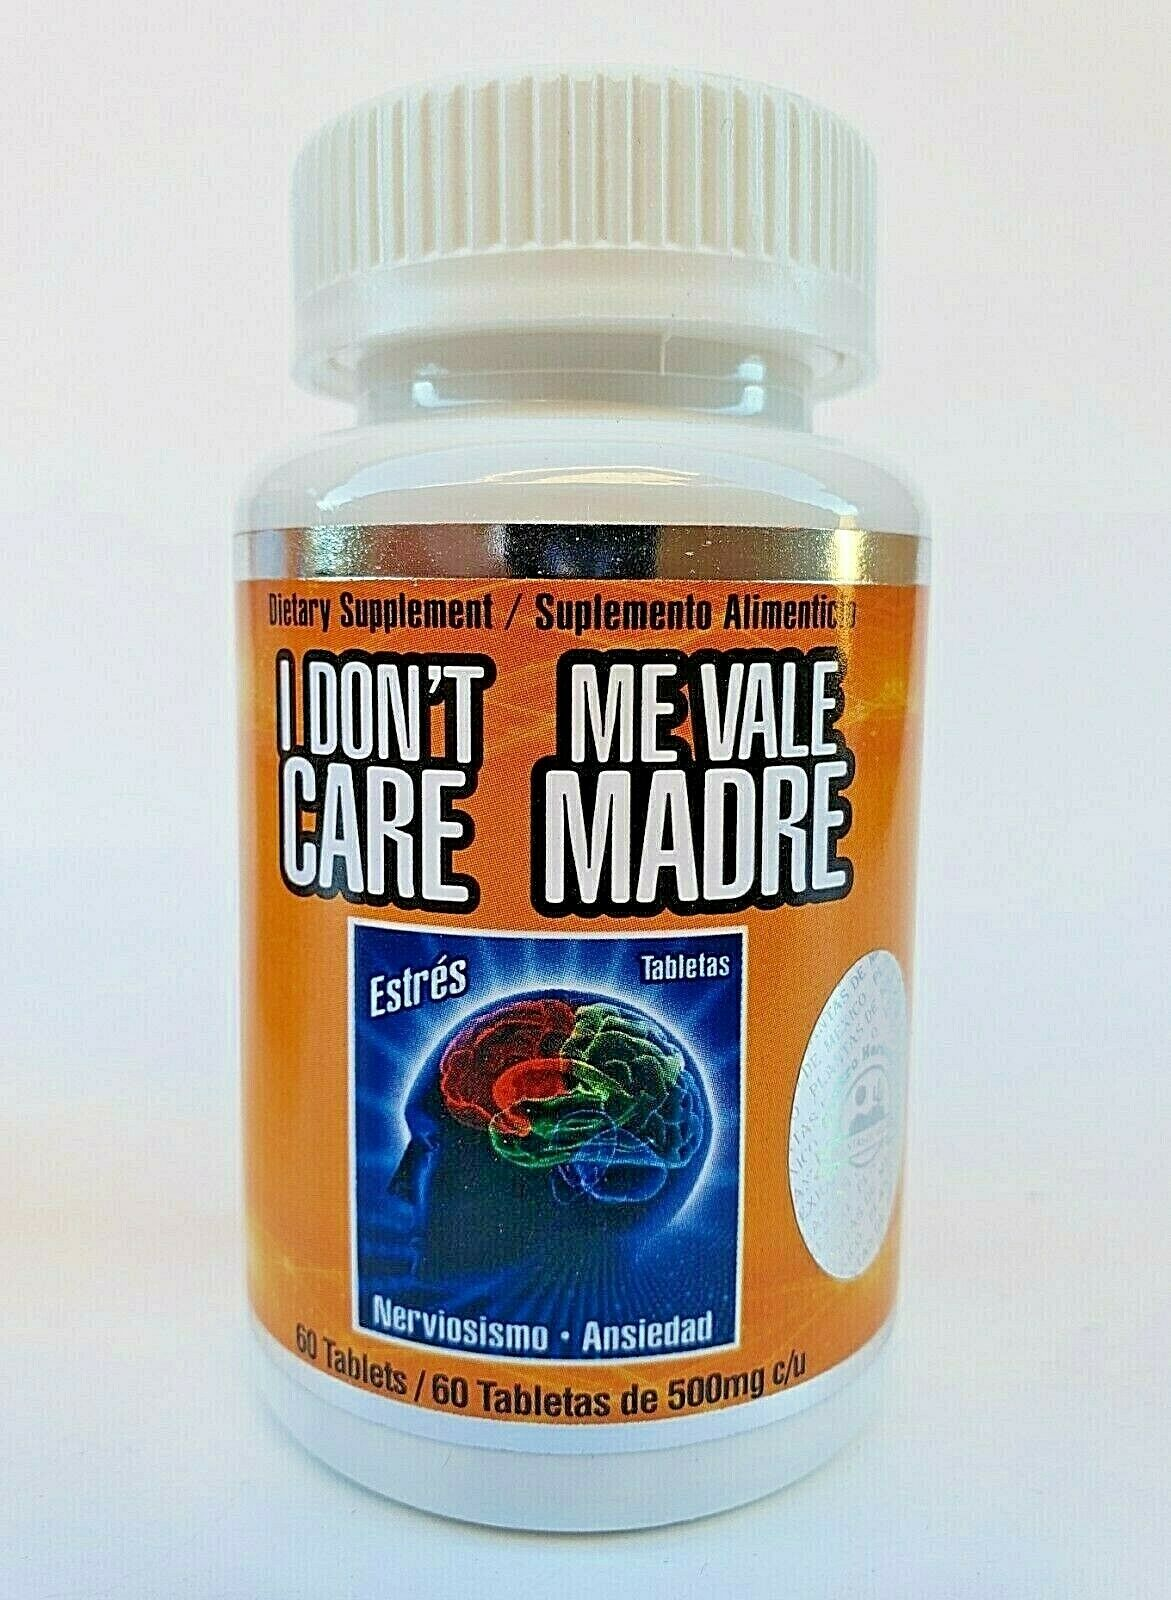 ME VALE MADRE 60 Tablets 500 mg each Support Estres Depresion Ansiedad 1